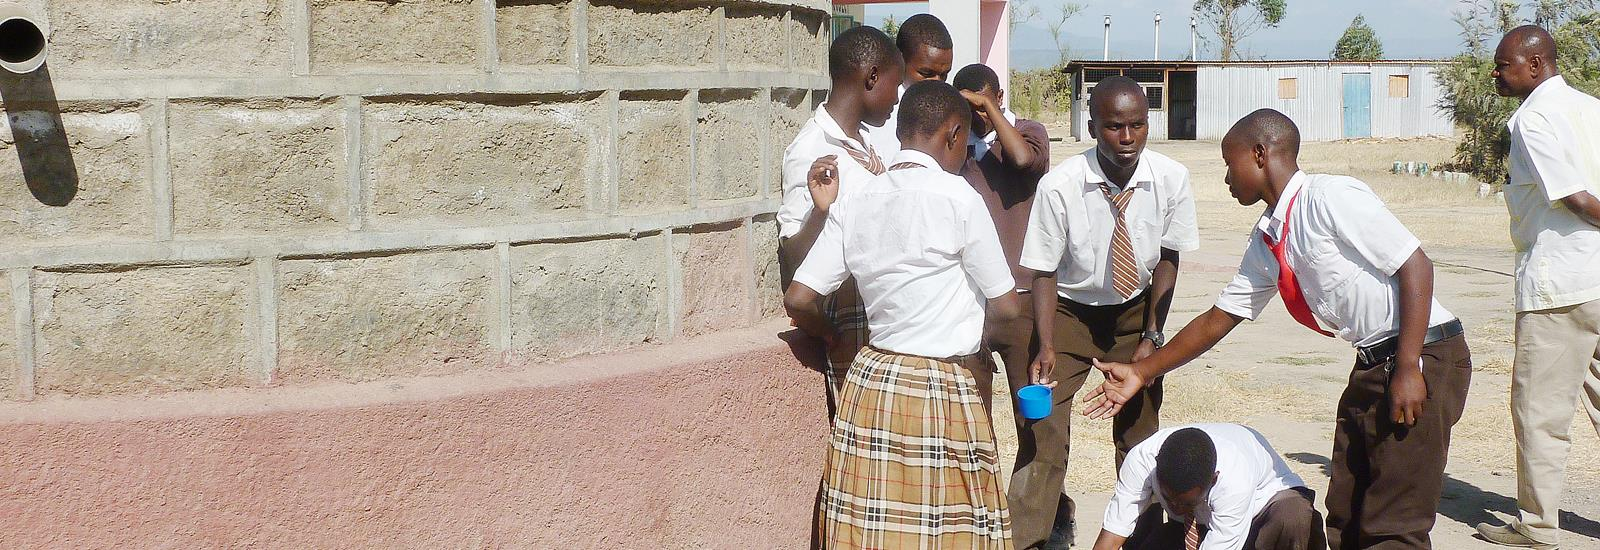 We change lives with programs like access to fresh water and education